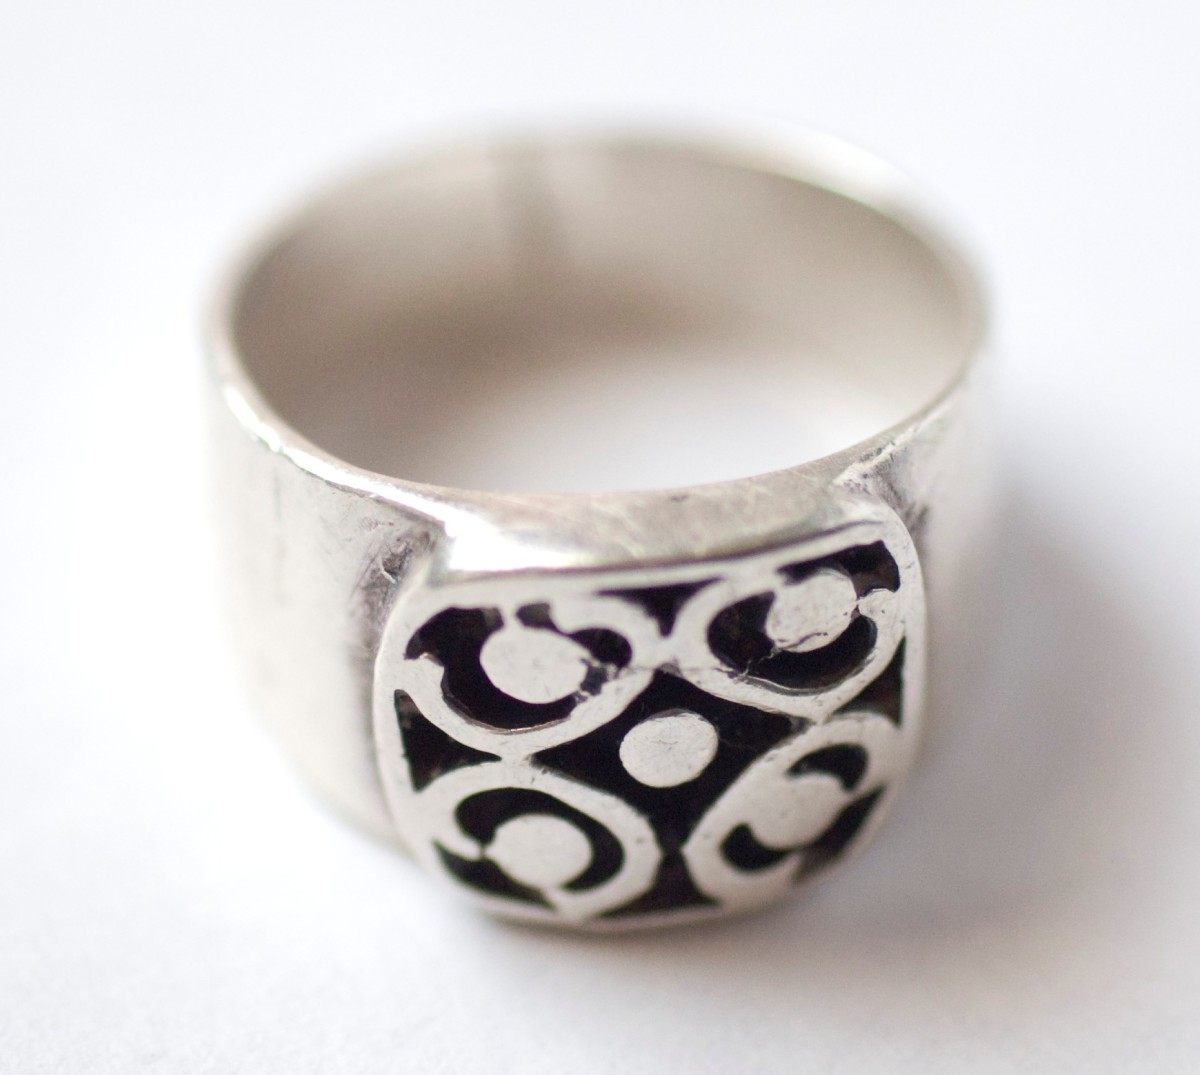 Old cast silver ring